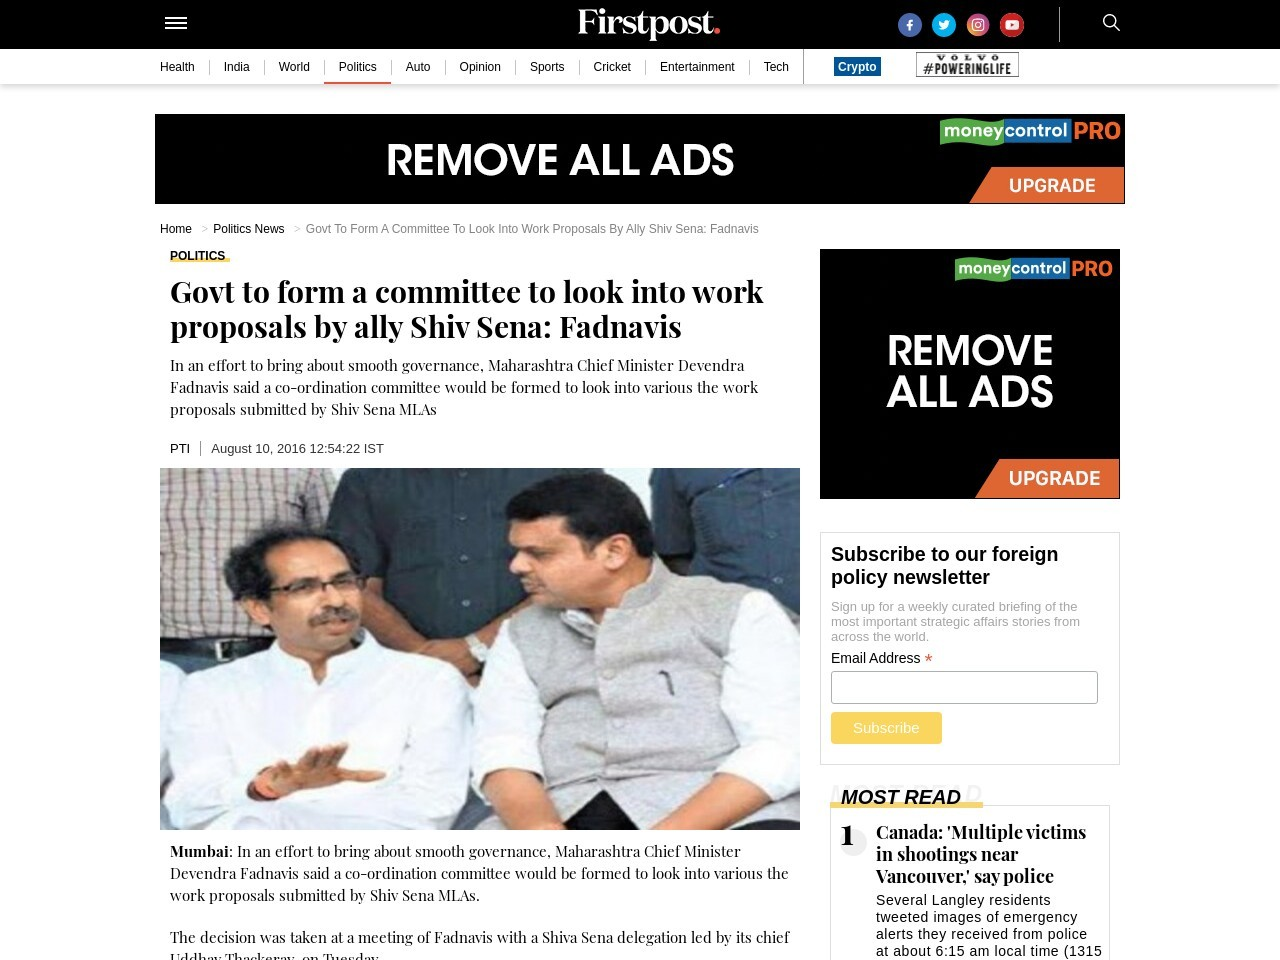 Govt to form a committee to look into work proposals by ally Shiv Sena: Fadnavis